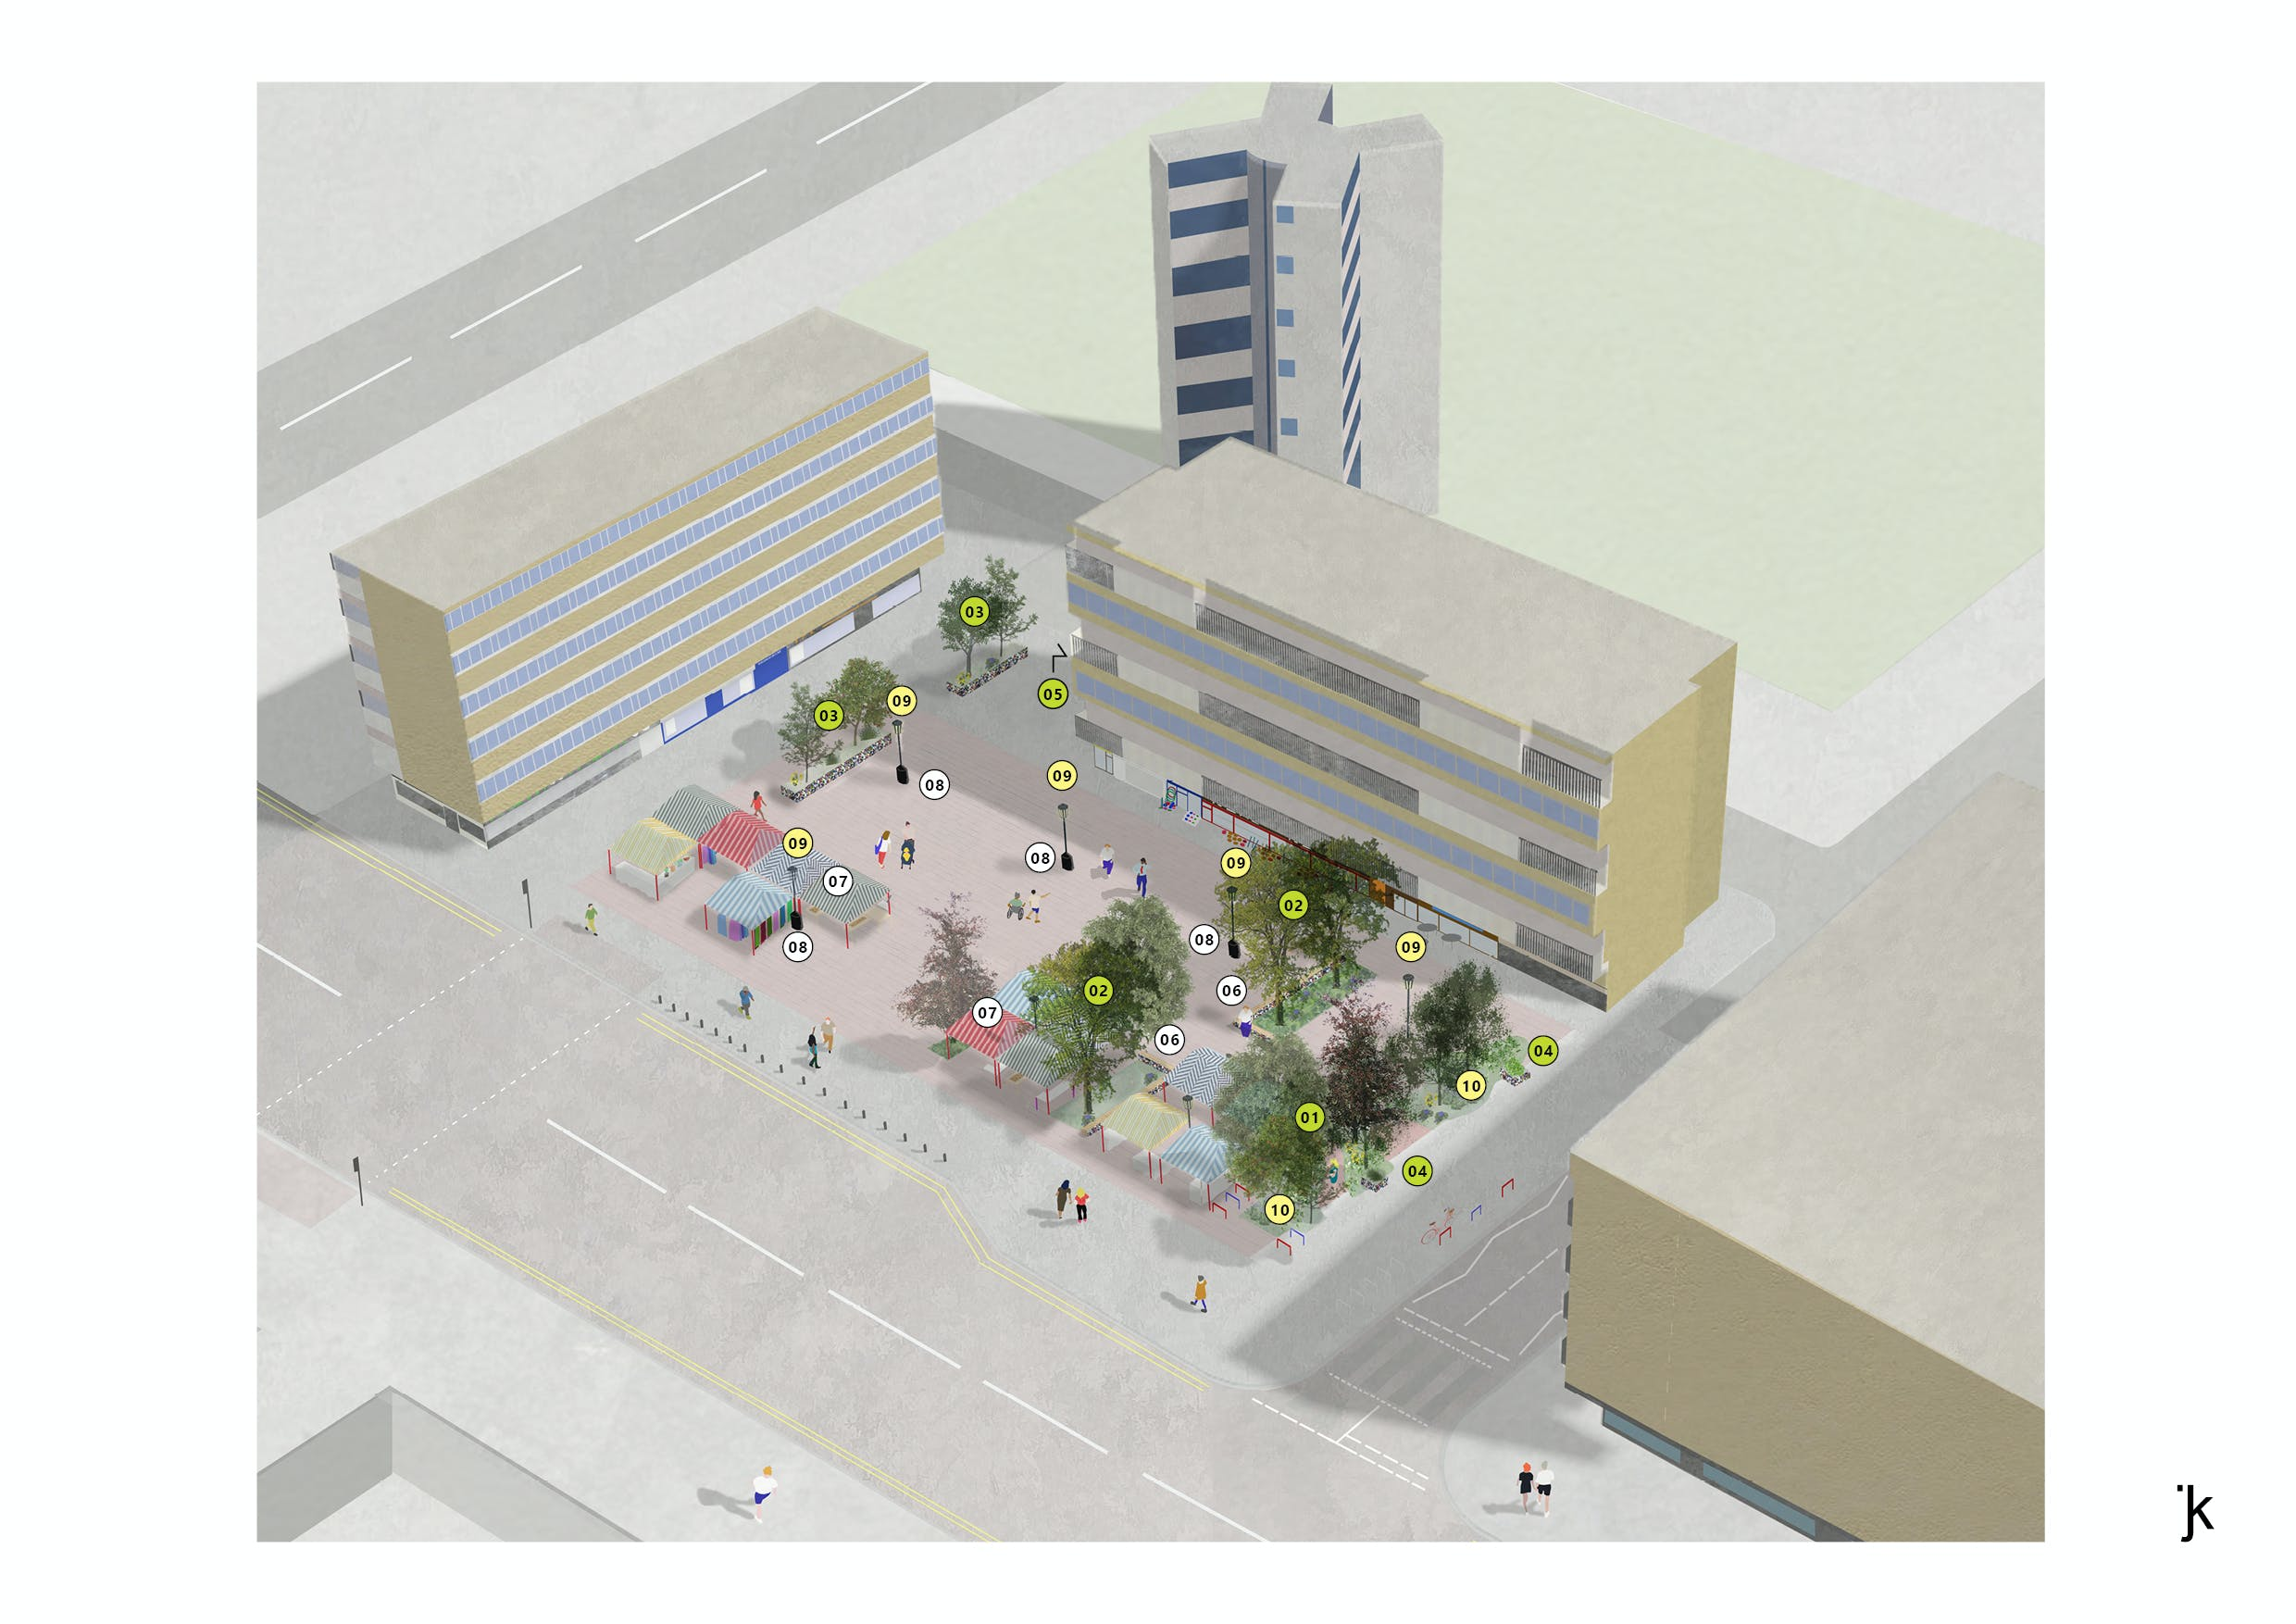 market square proposal : market day